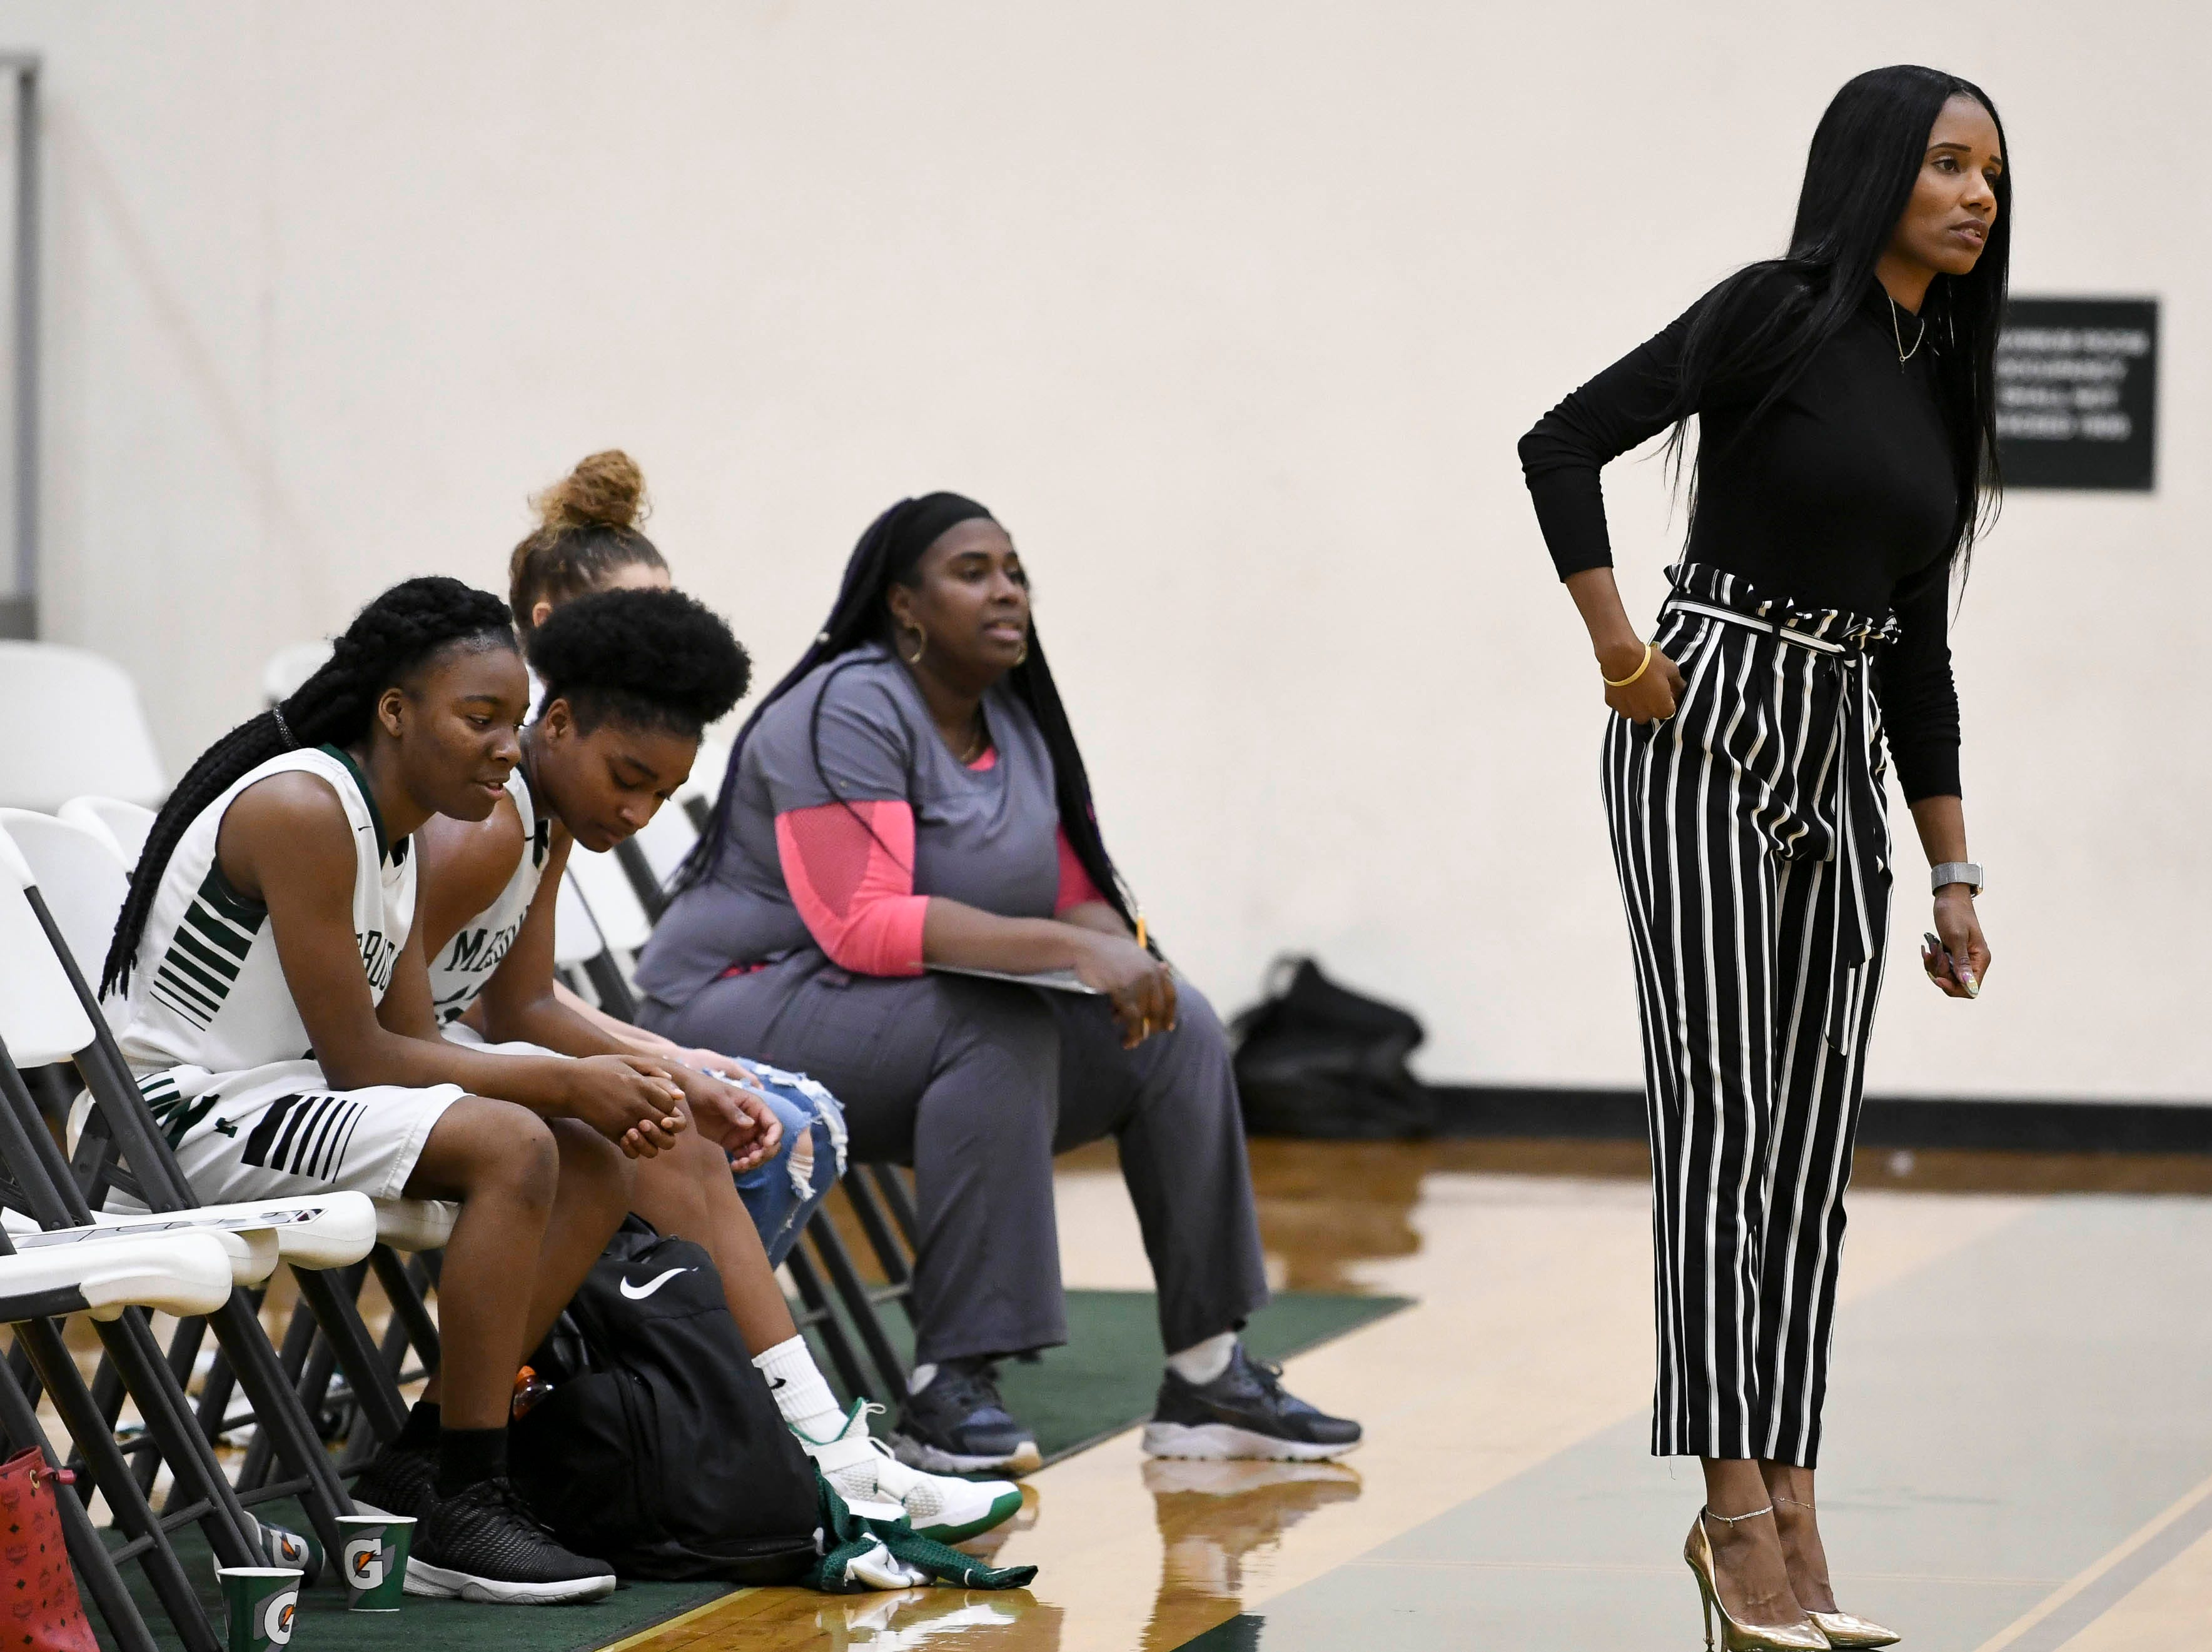 Melbourne girls basketball coach Aerial Wilson watches the action during Tuesday's game.